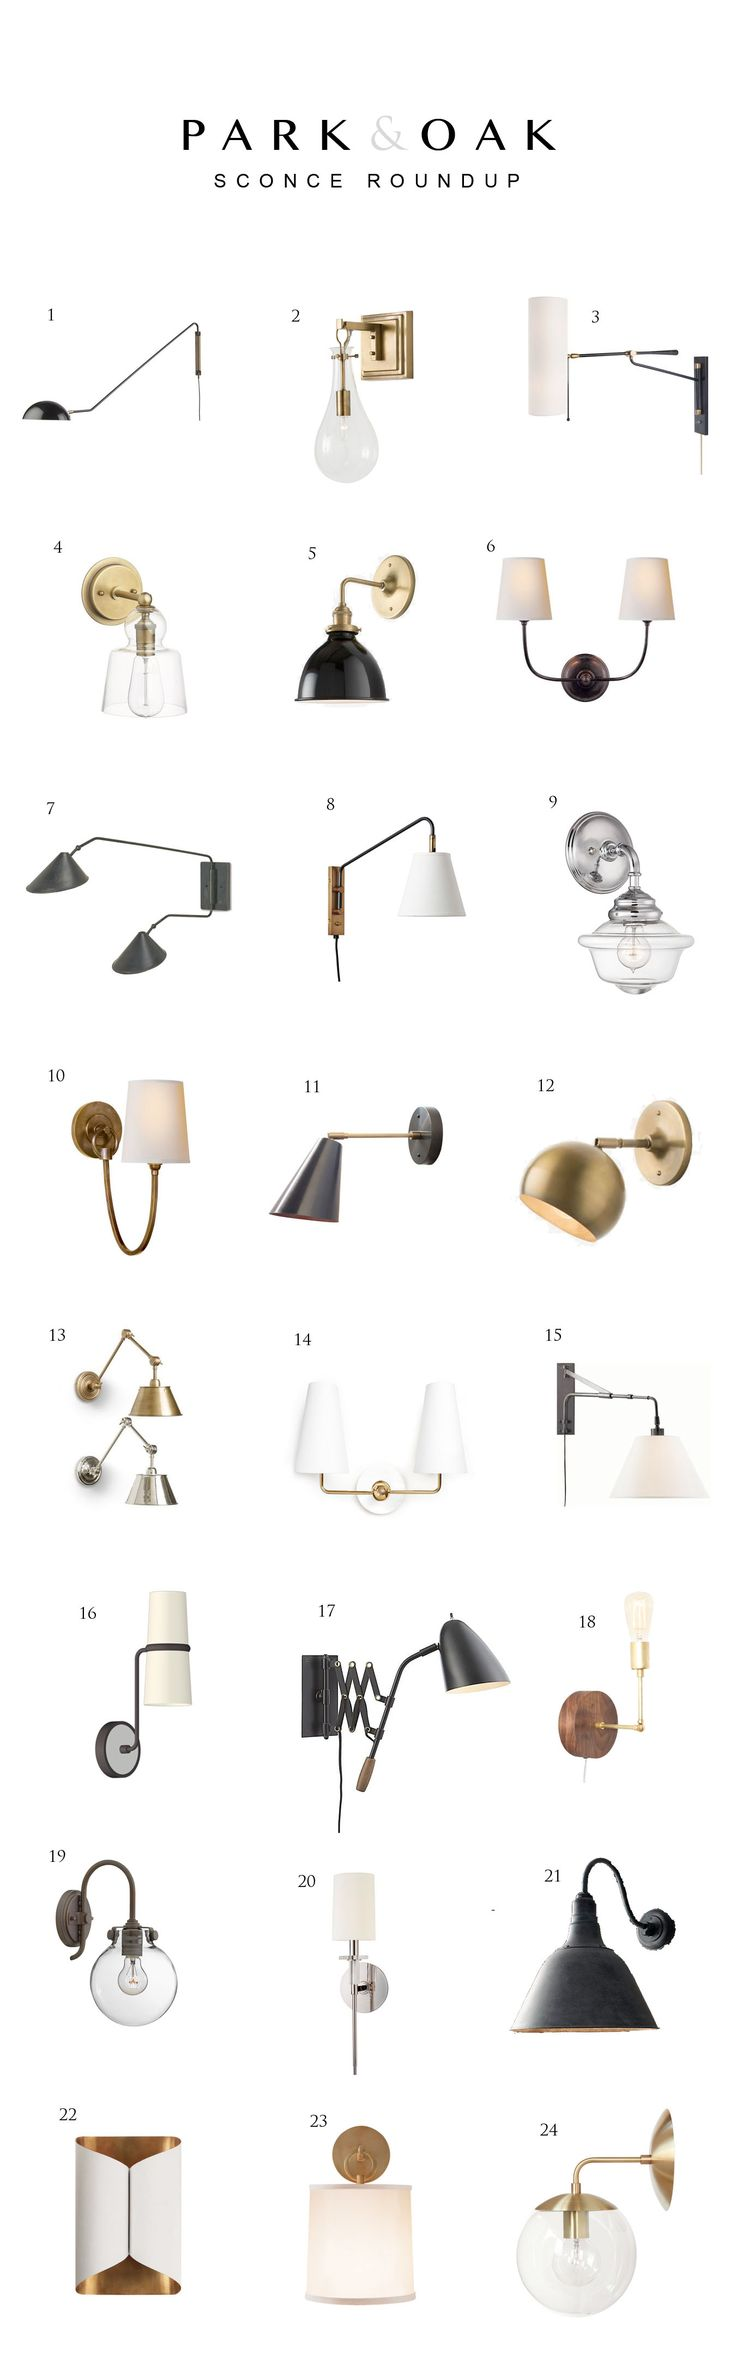 Bedroom wall lighting - Wall Sconce Roundup Bedside Wall Lightsbedroom